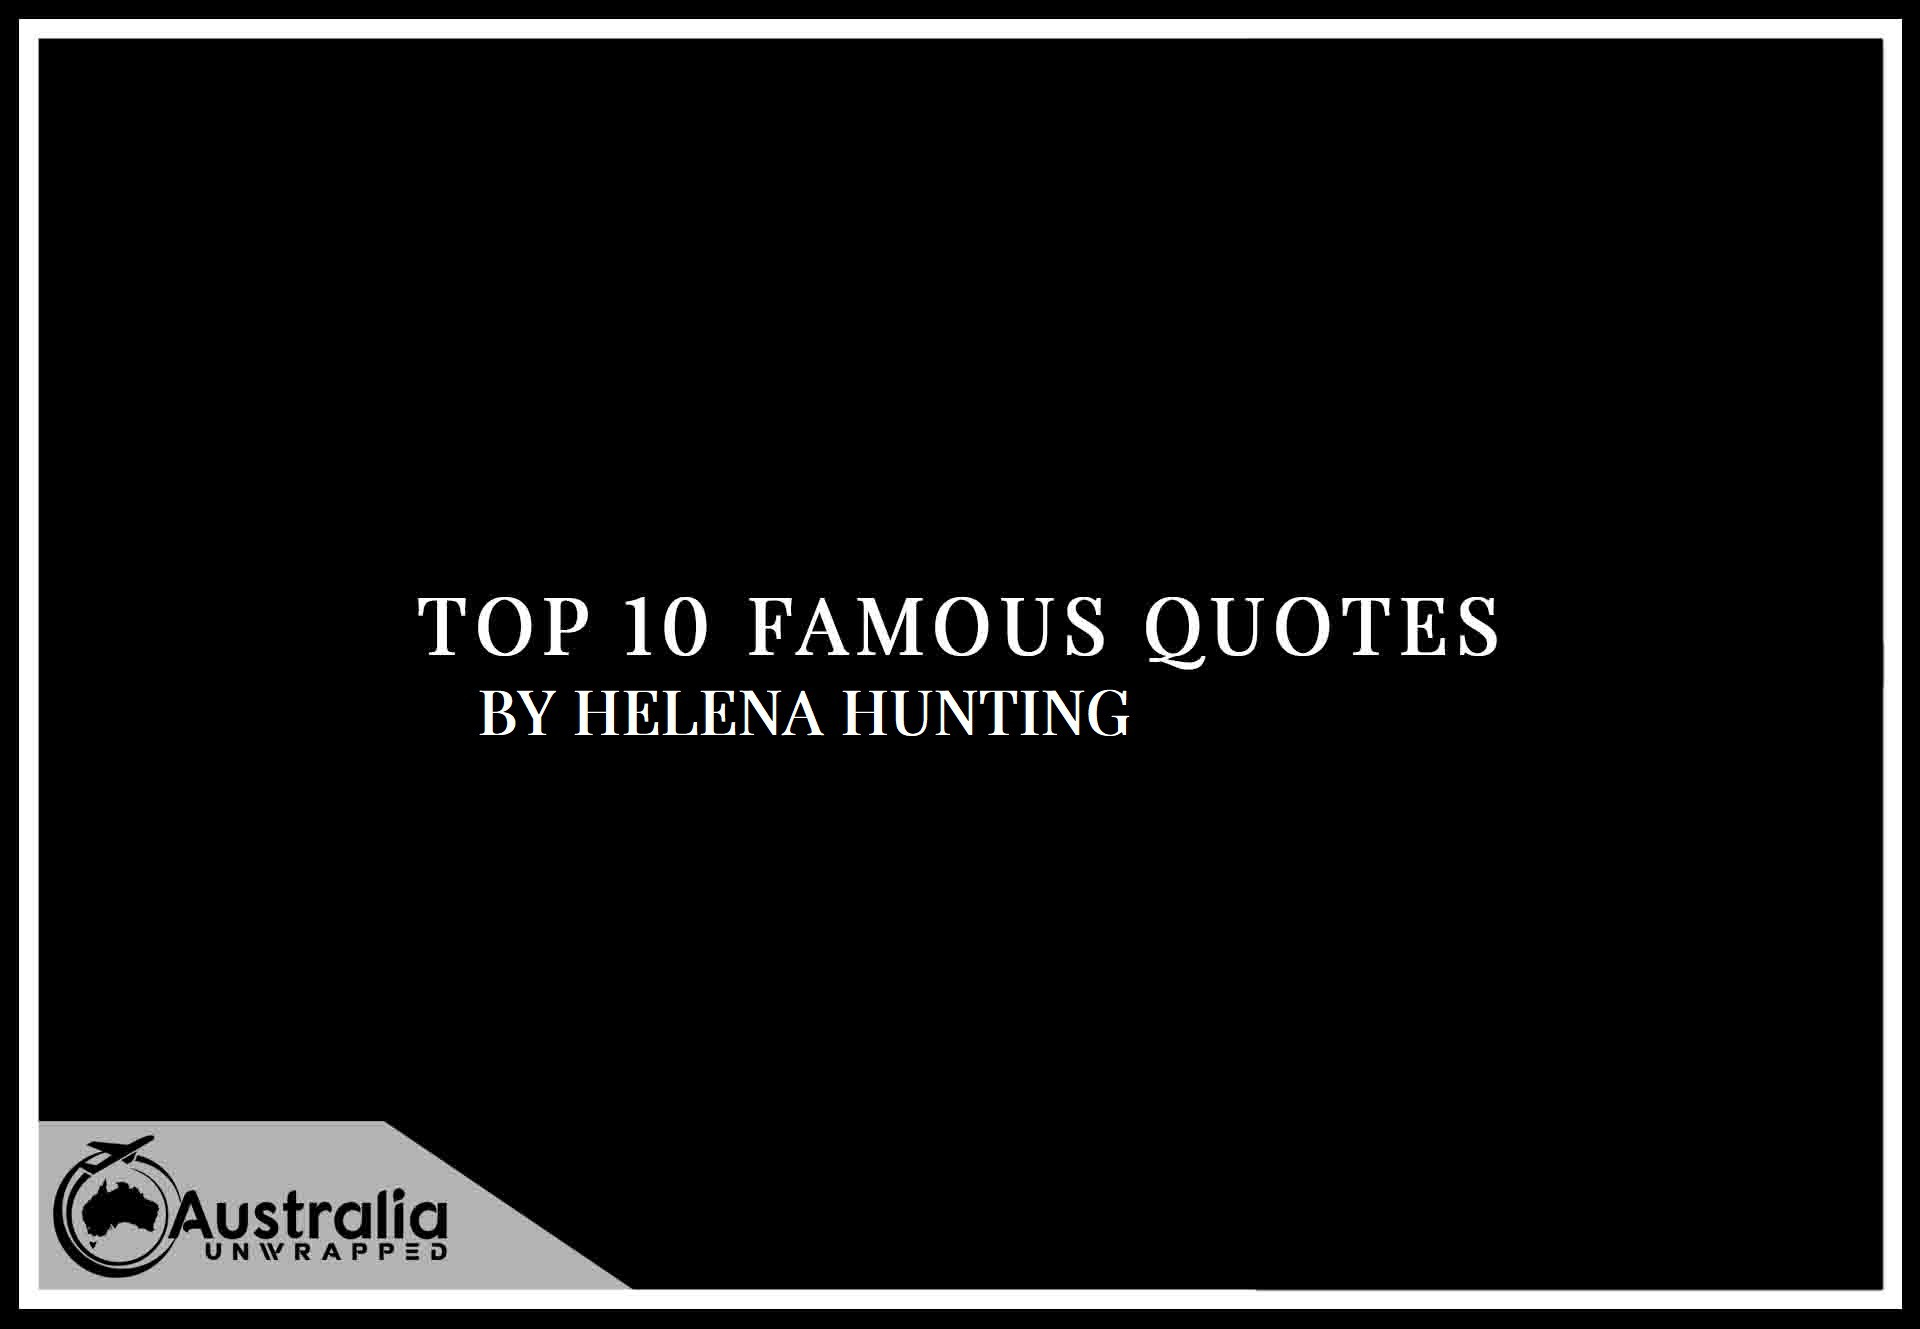 Top 10 Famous Quotes by Author Helena Hunting